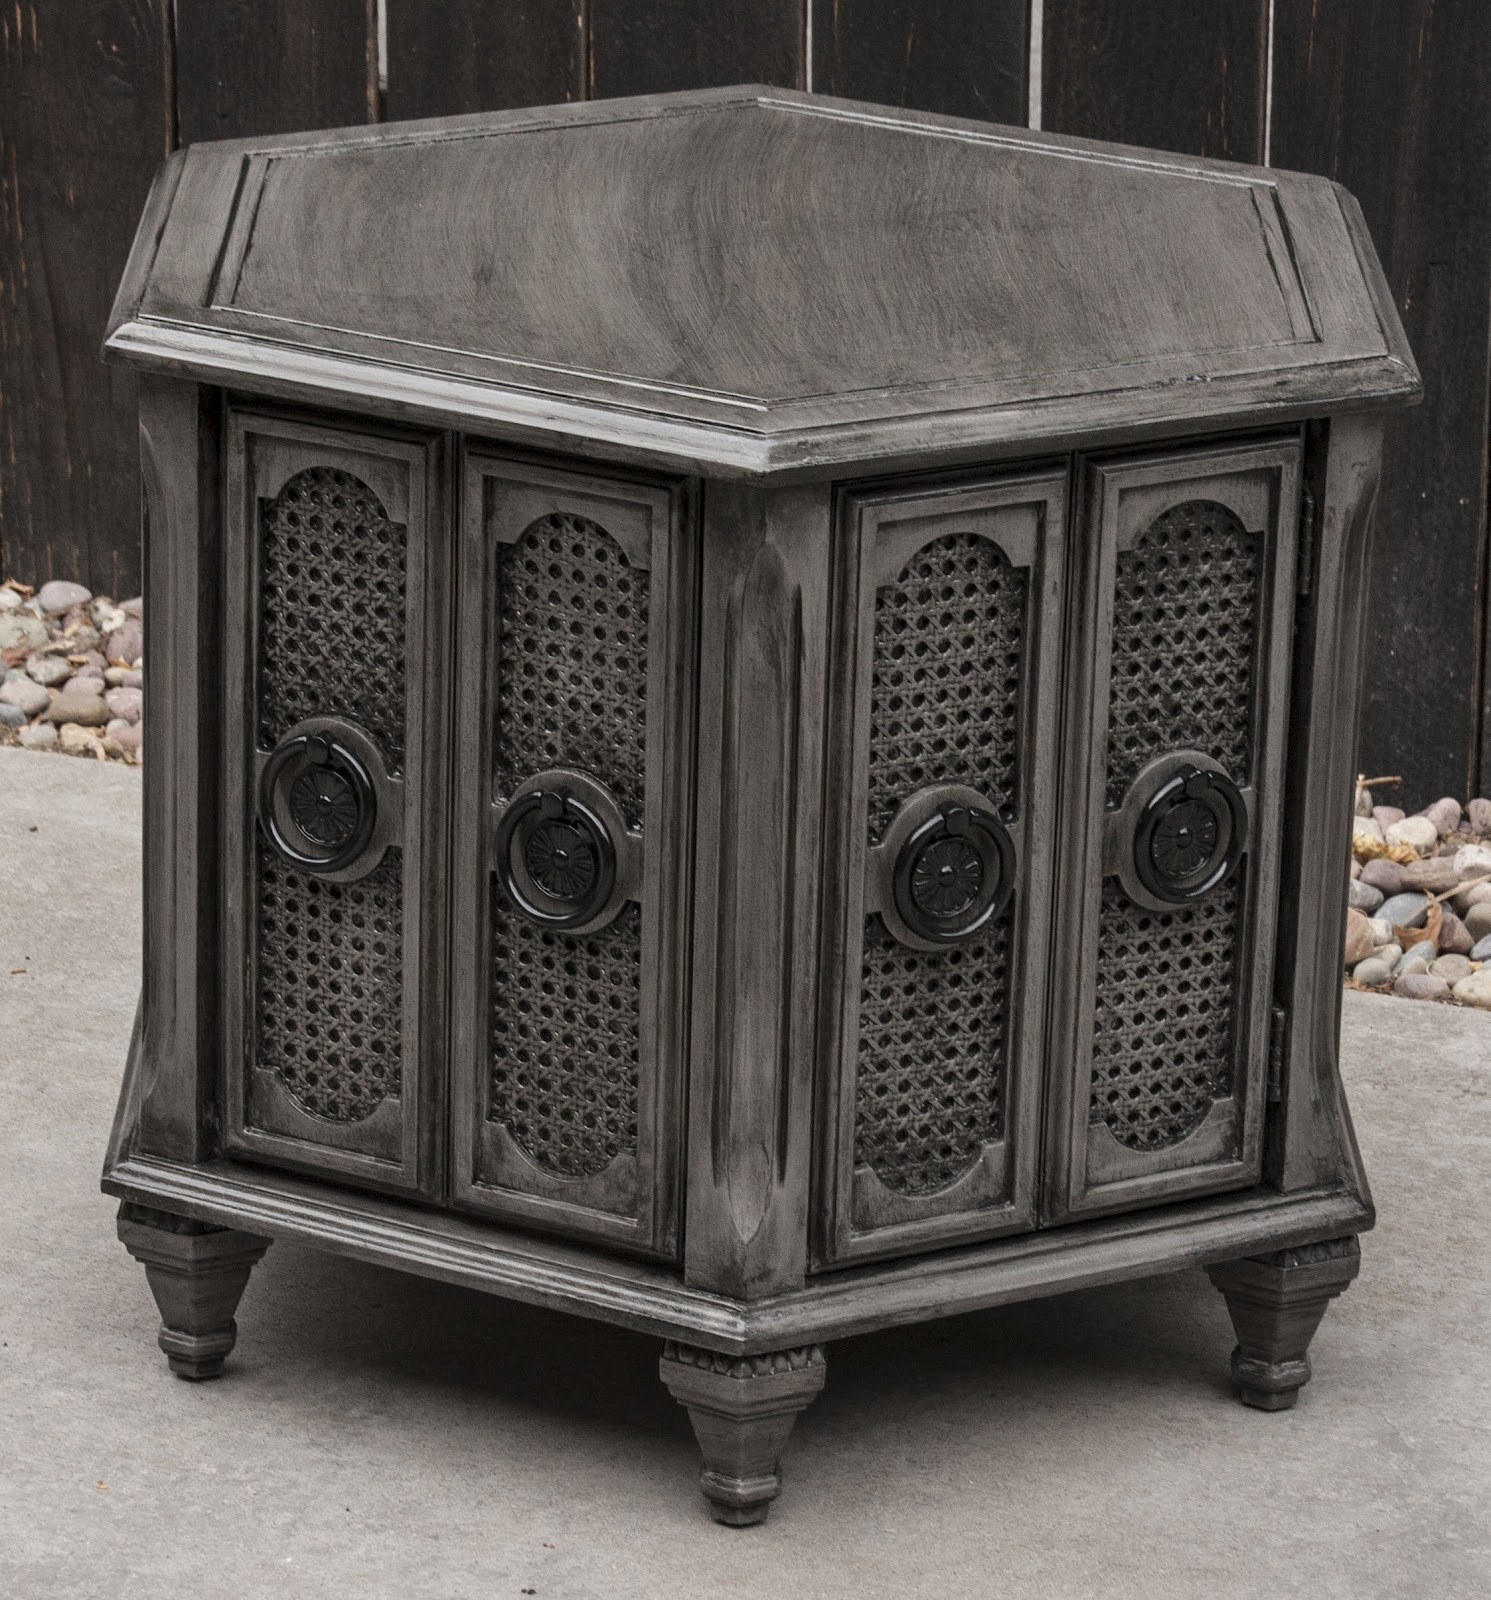 It Is Available For 165 With Shipping And Delivery Call Or Text 801 995 8865 E Mail Junquefurniture Gmail Questions